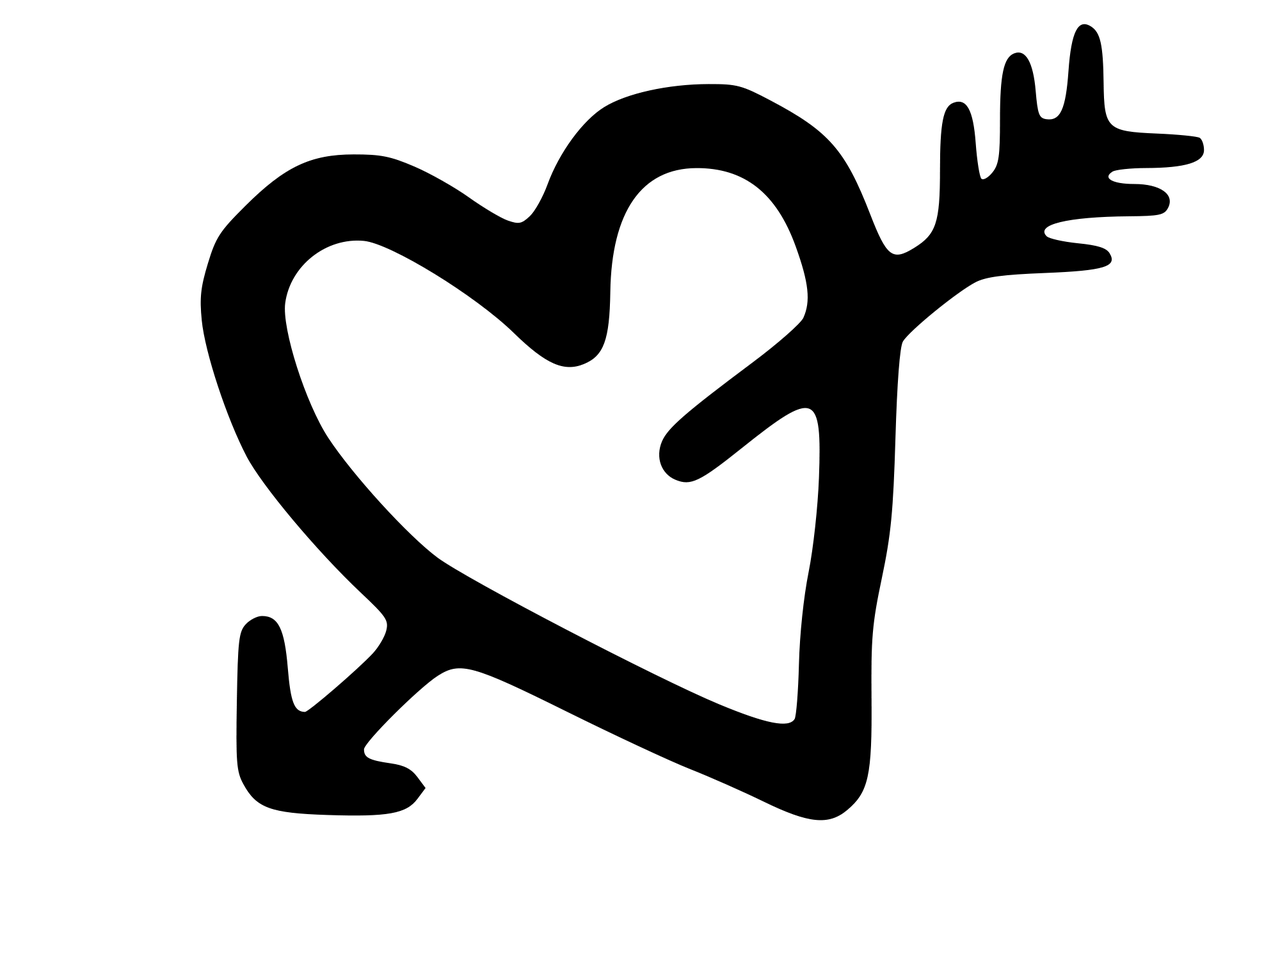 Black and white heart arrow clipart picture transparent stock Heart and Arrow Drawing transparent PNG - StickPNG picture transparent stock